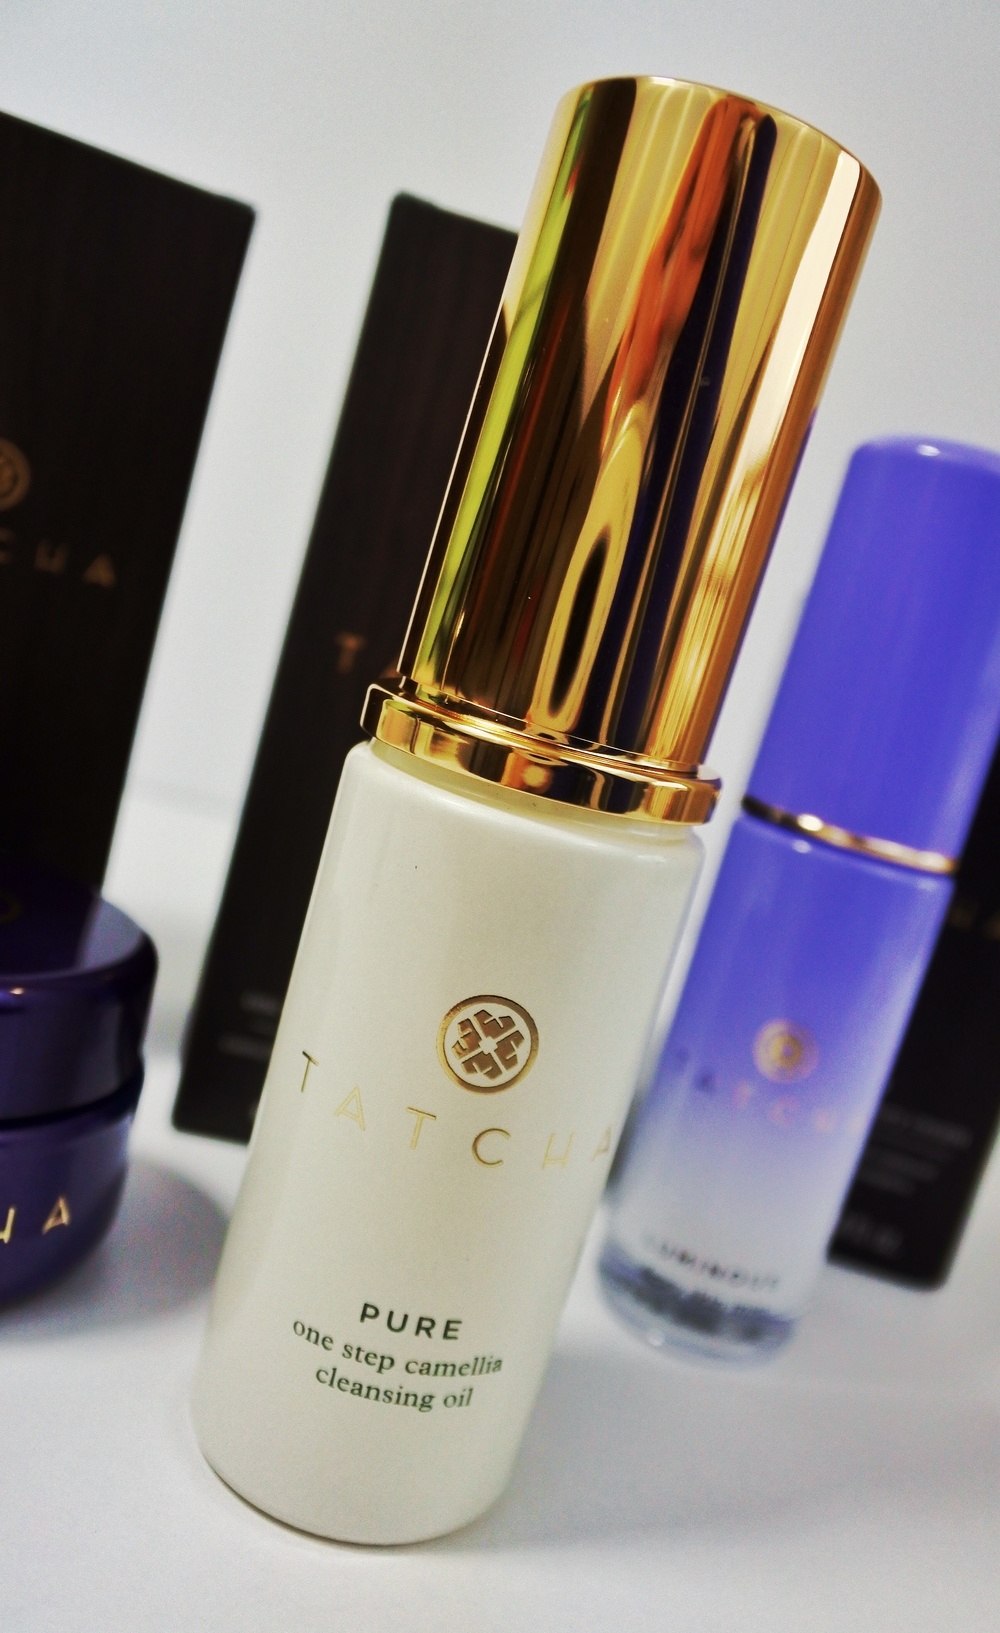 Tatcha Cleansing Oil Available at (full & travel size) -  Tatcha ,  Sephora .  Photo shows 0.8oz travel size.